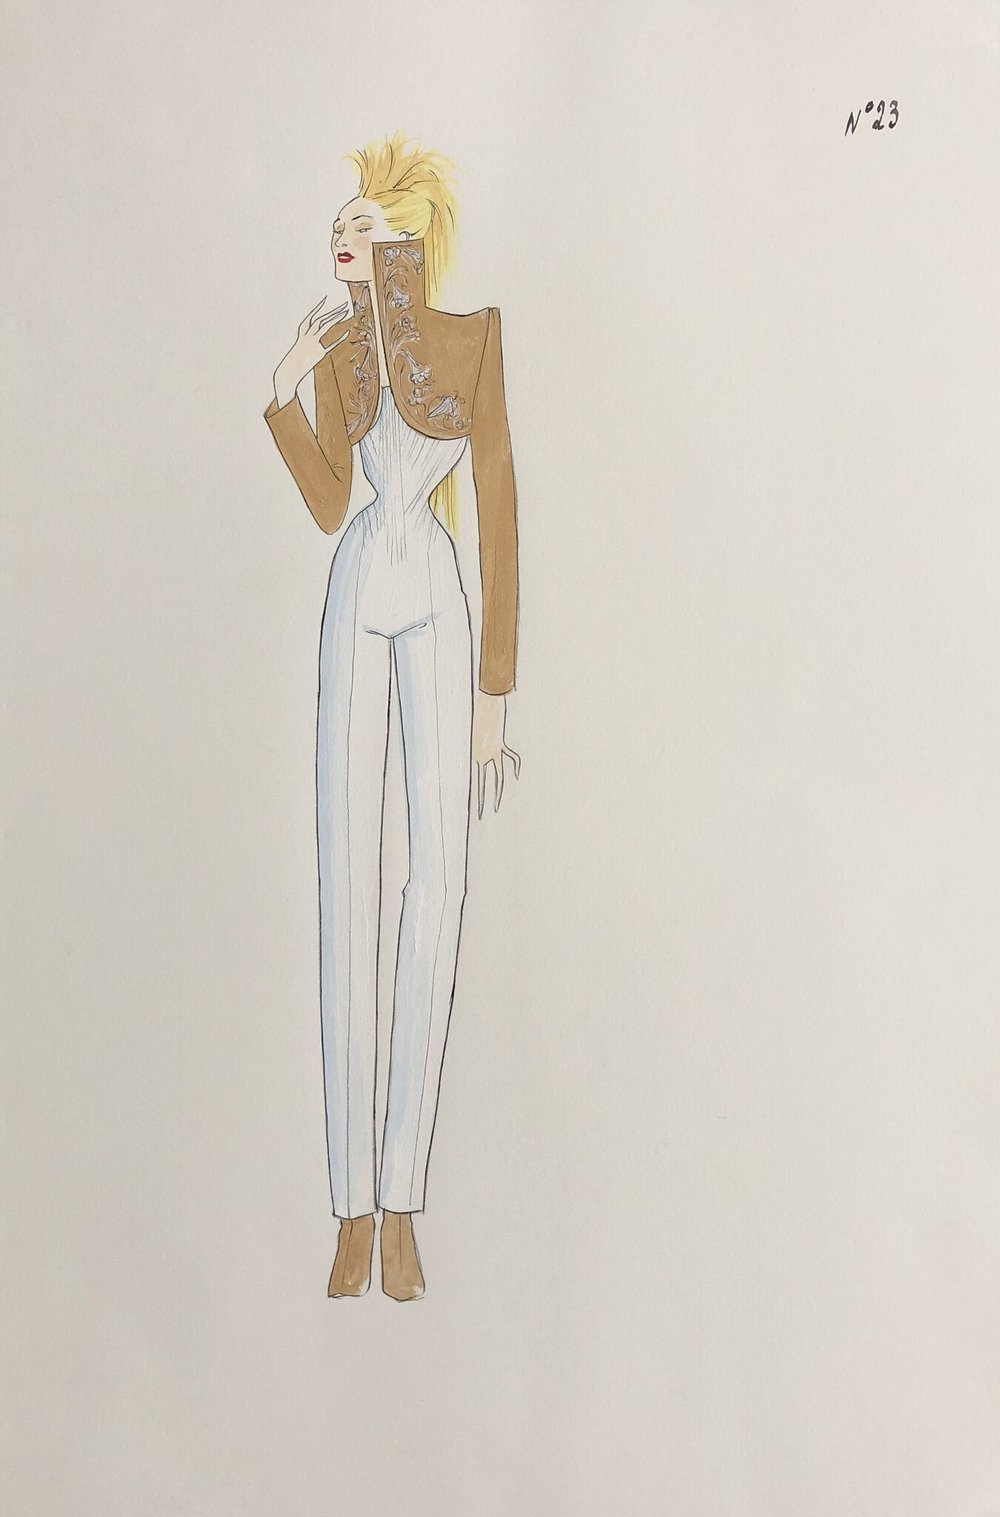 'In Search of the Golden Fleece' #23 - For his First Givenchy Haute Couture Collection, S/S 1997